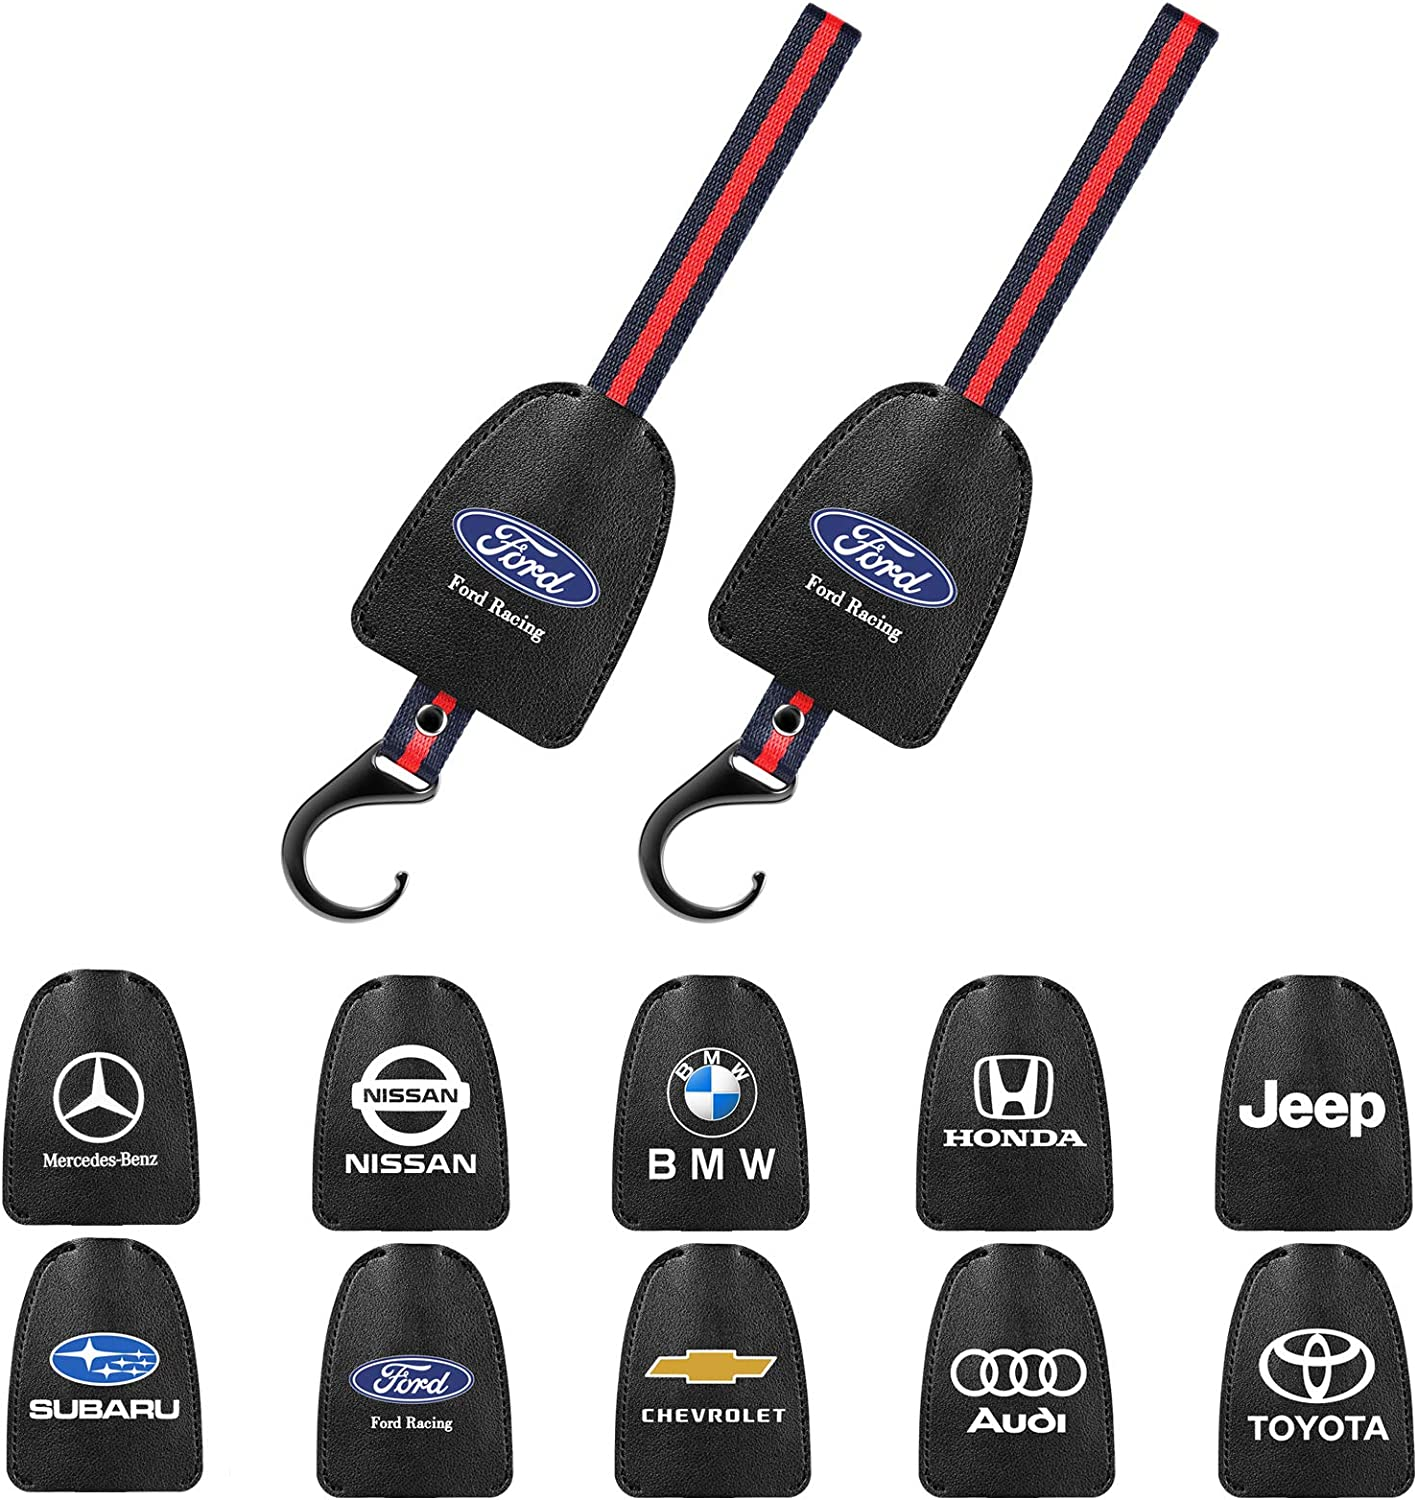 DEWEST 2PCs Genuine Leather Car Hooks Logo for Mercedes-Benz A C E S Class Series,GLK CLA GLA GLC GLE CLS SLK AMG Series Business Presents Car Hook for Women/&Men Car Hooks for Purses and Bags